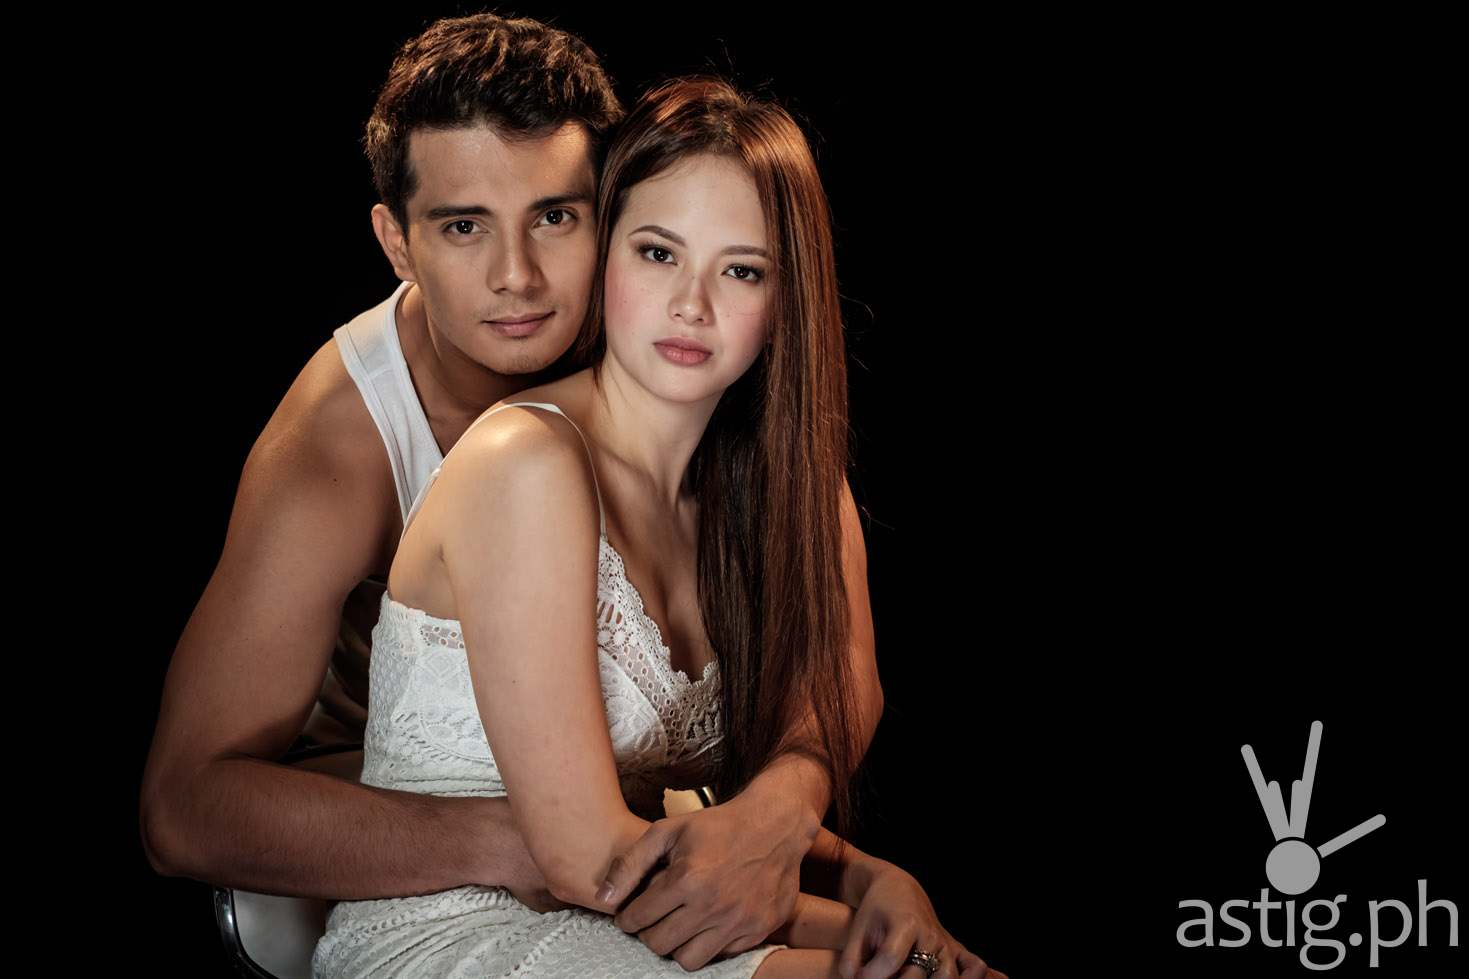 Pasion De Amor Continues To Top Ratings In Its Final Weeks Astig Ph